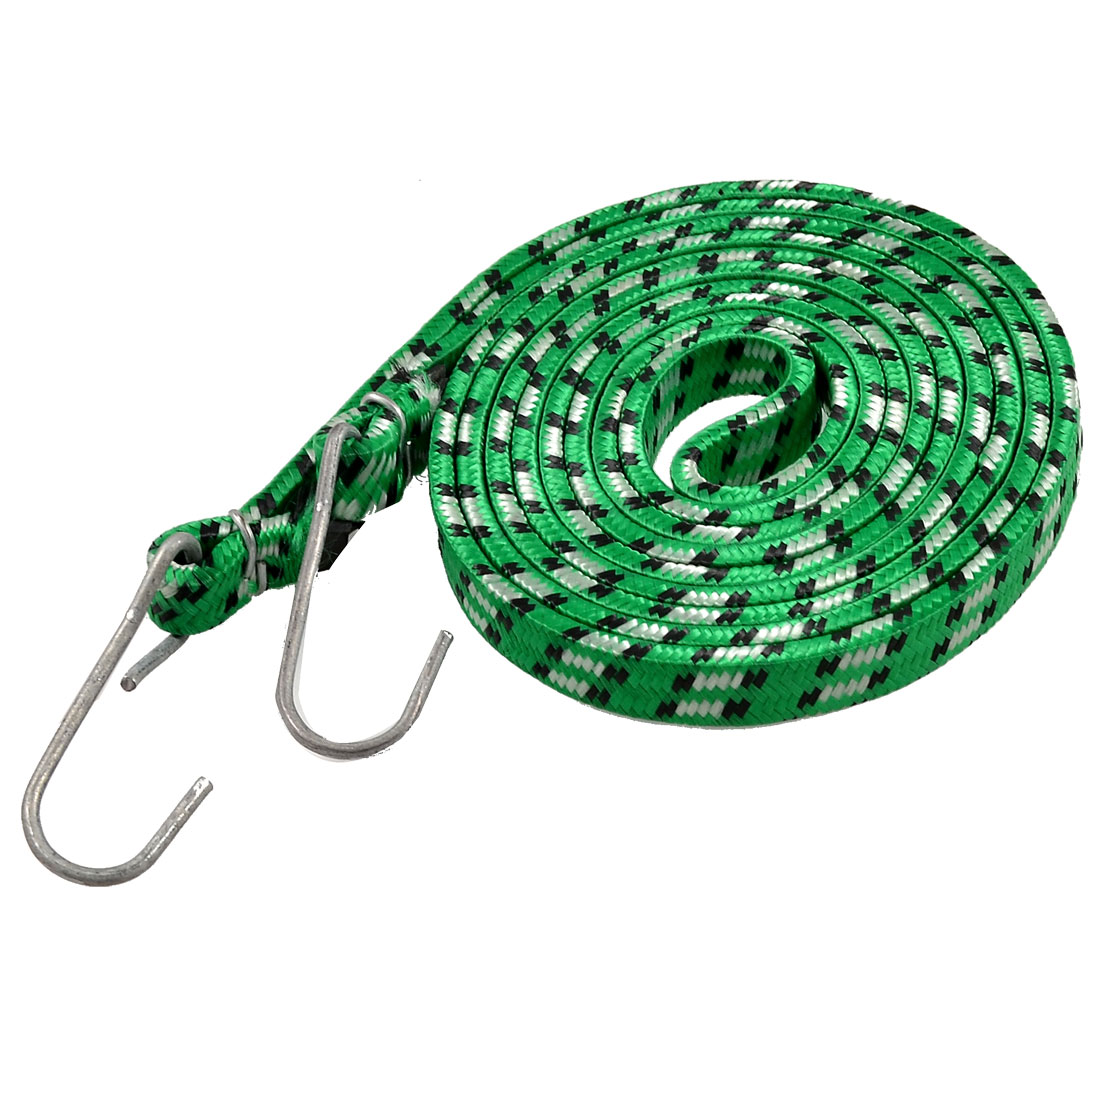 Metal Hook Green Flat Stretchy Bicycle Luggage Bundling Cord Rope 2.28M